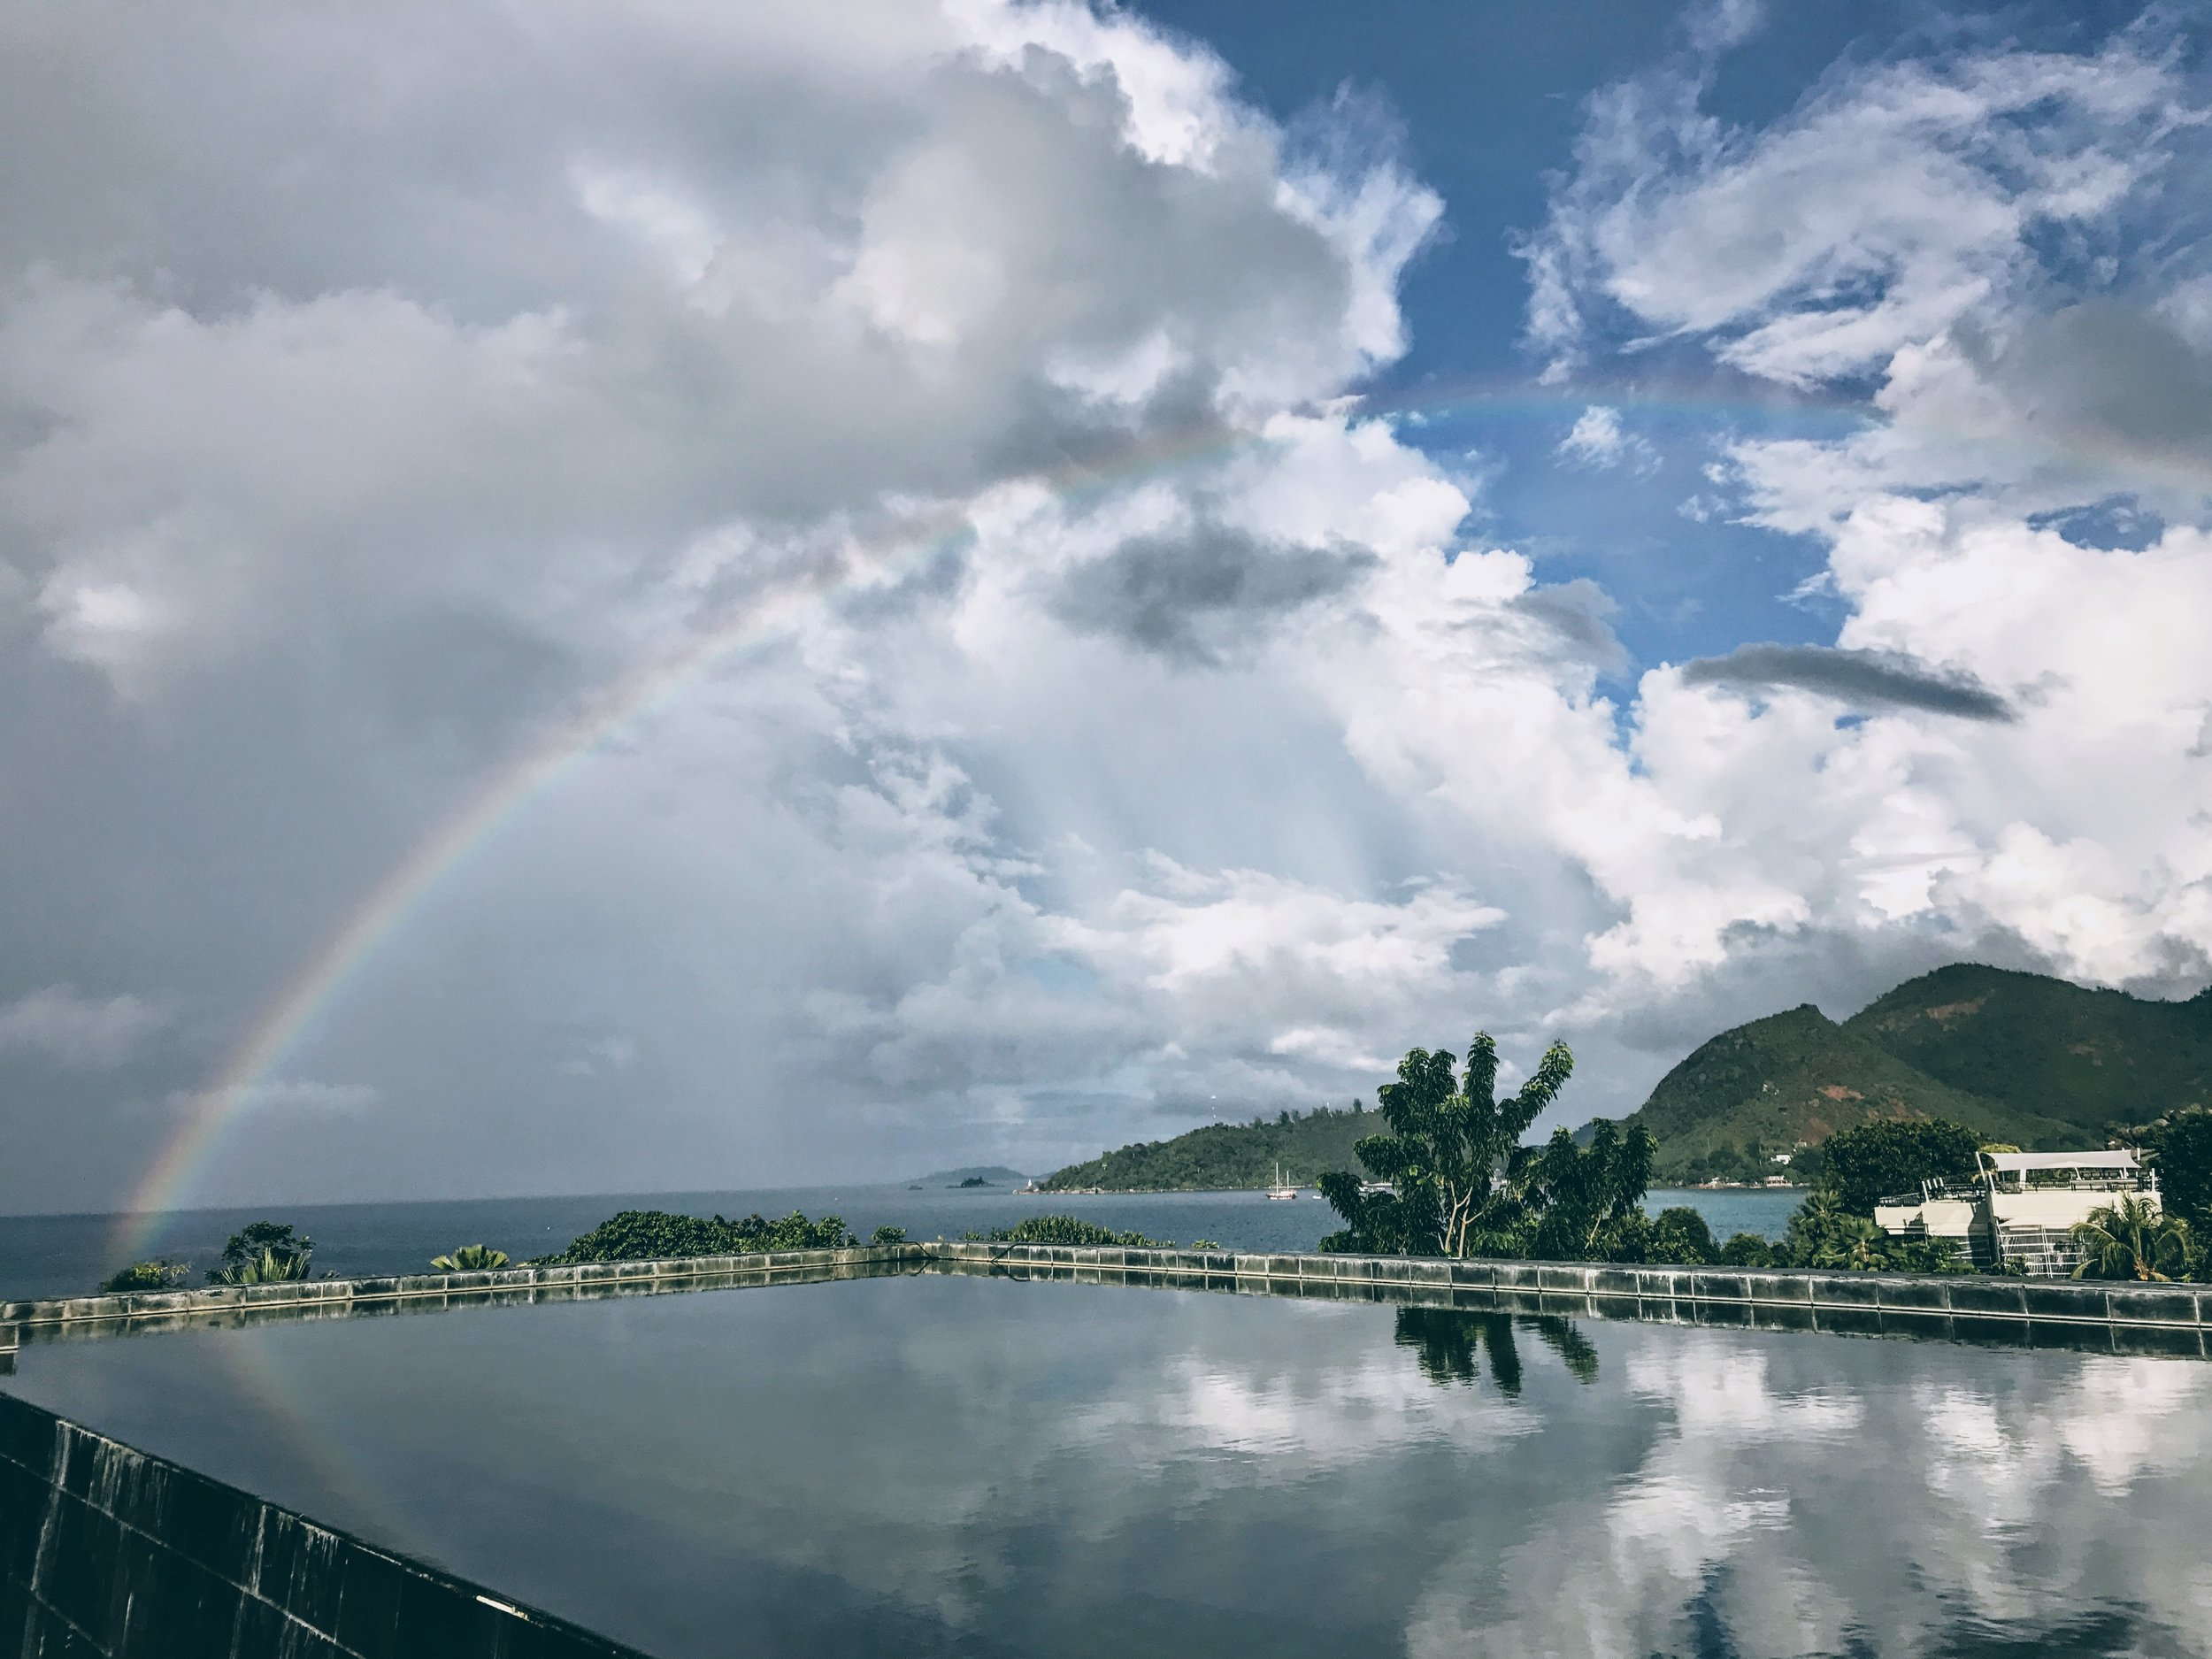 A rainbow appeared after a rain shower at this Zen like retreat.